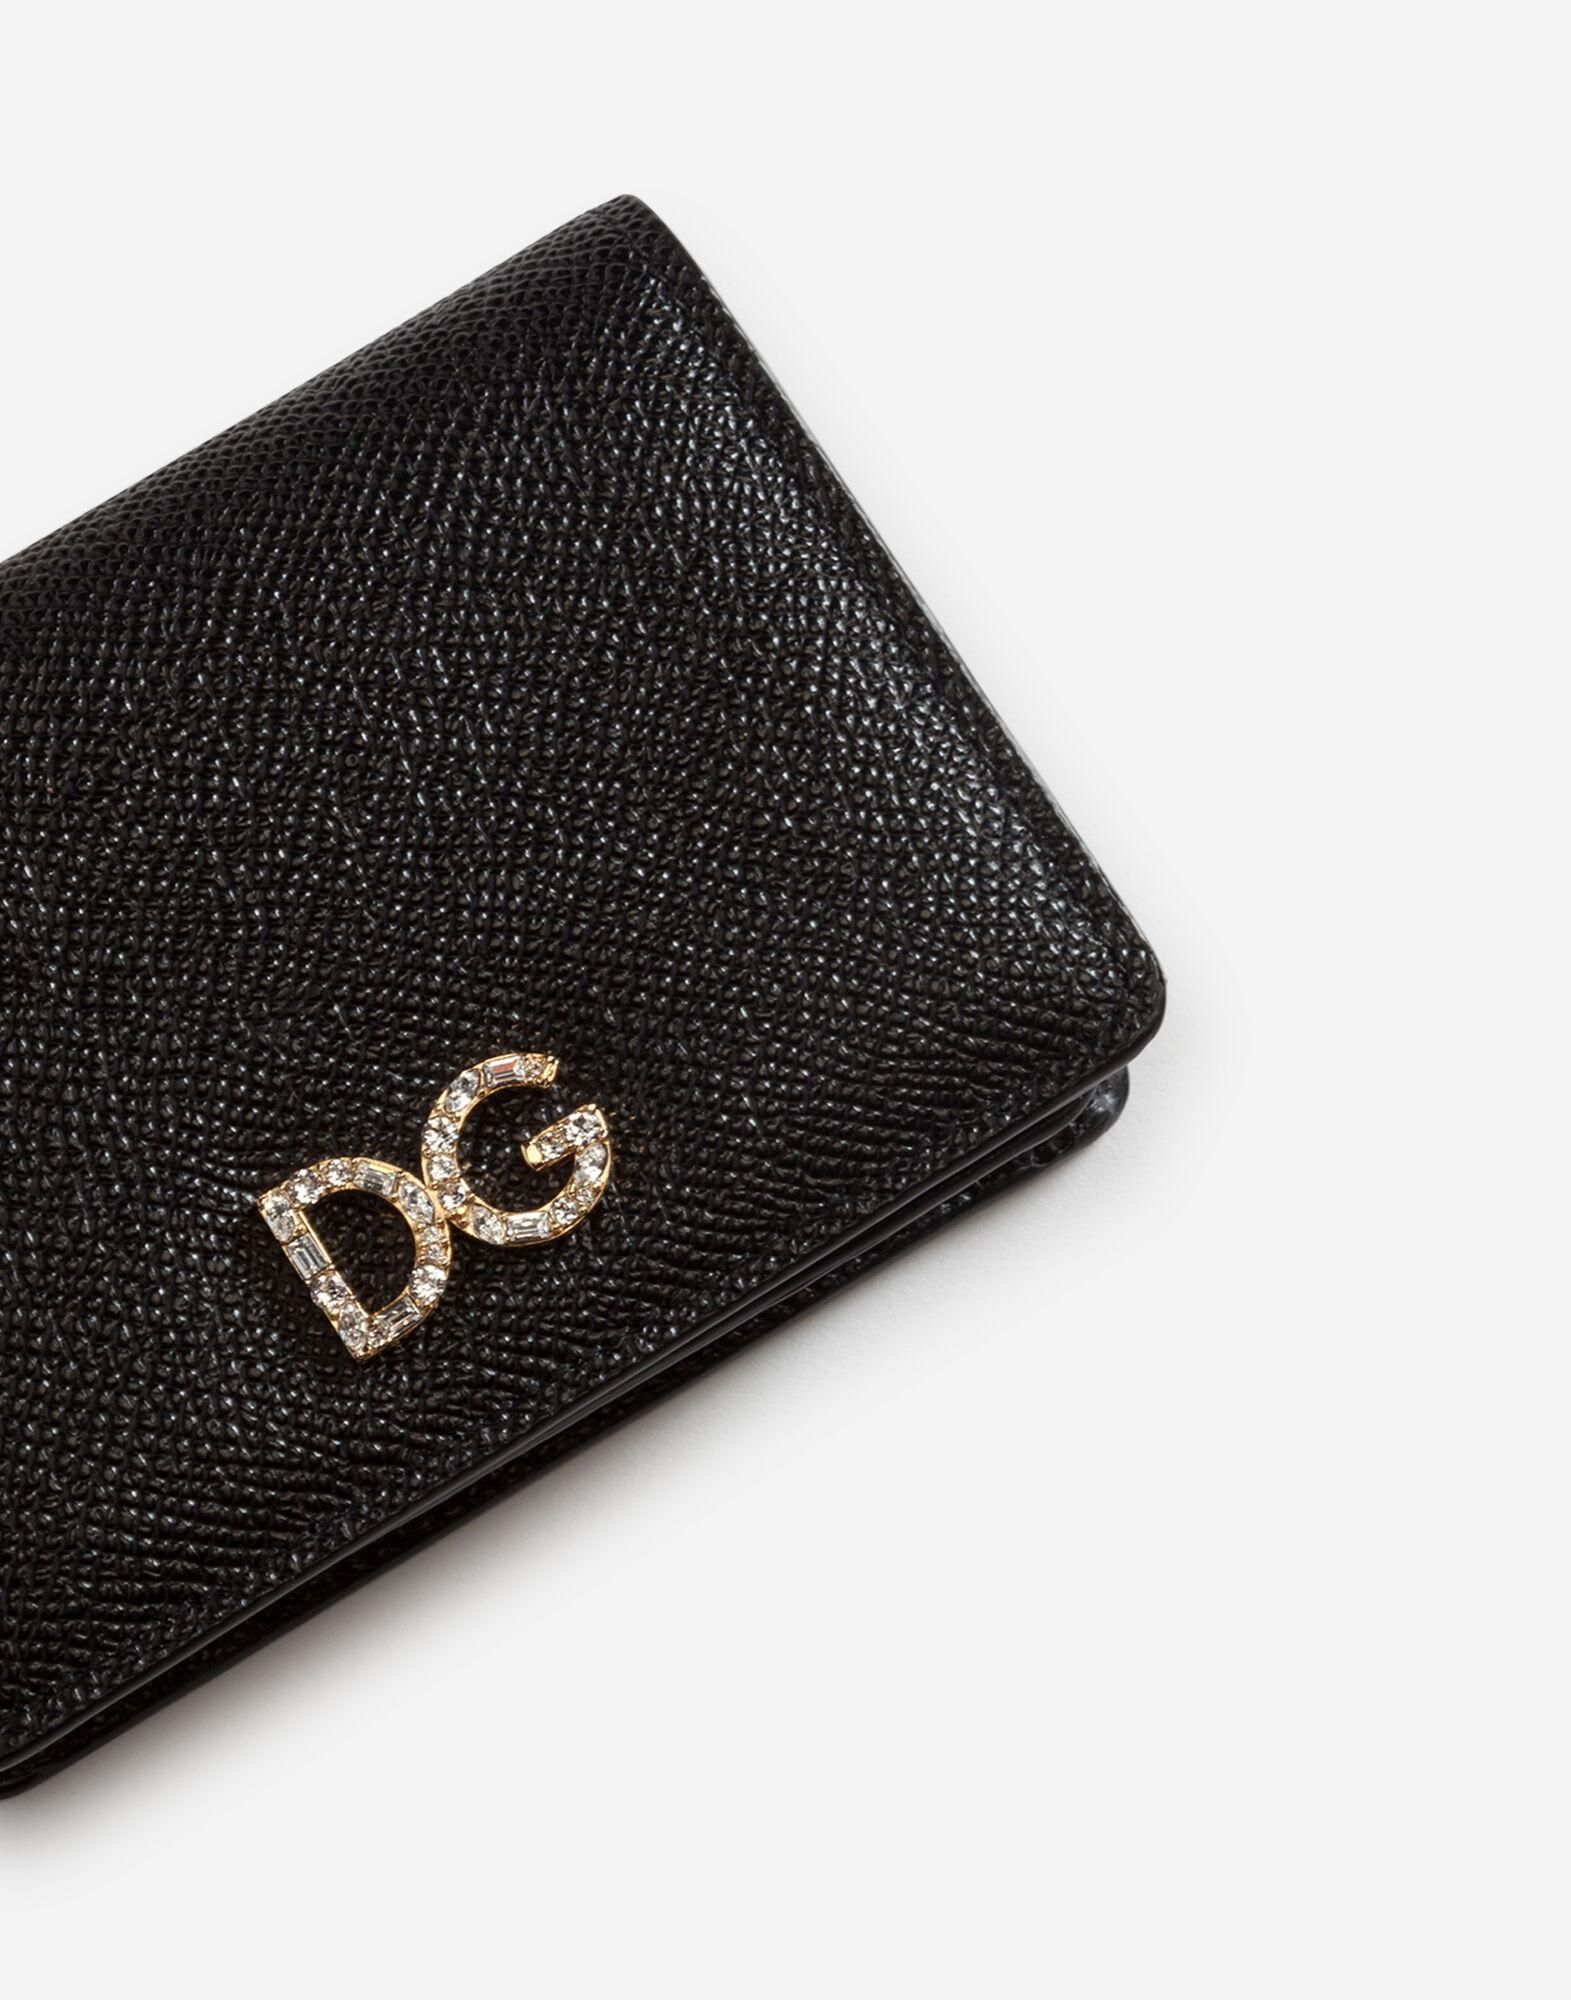 Card holder in laminate dauphine calfskin with logo crystals 3